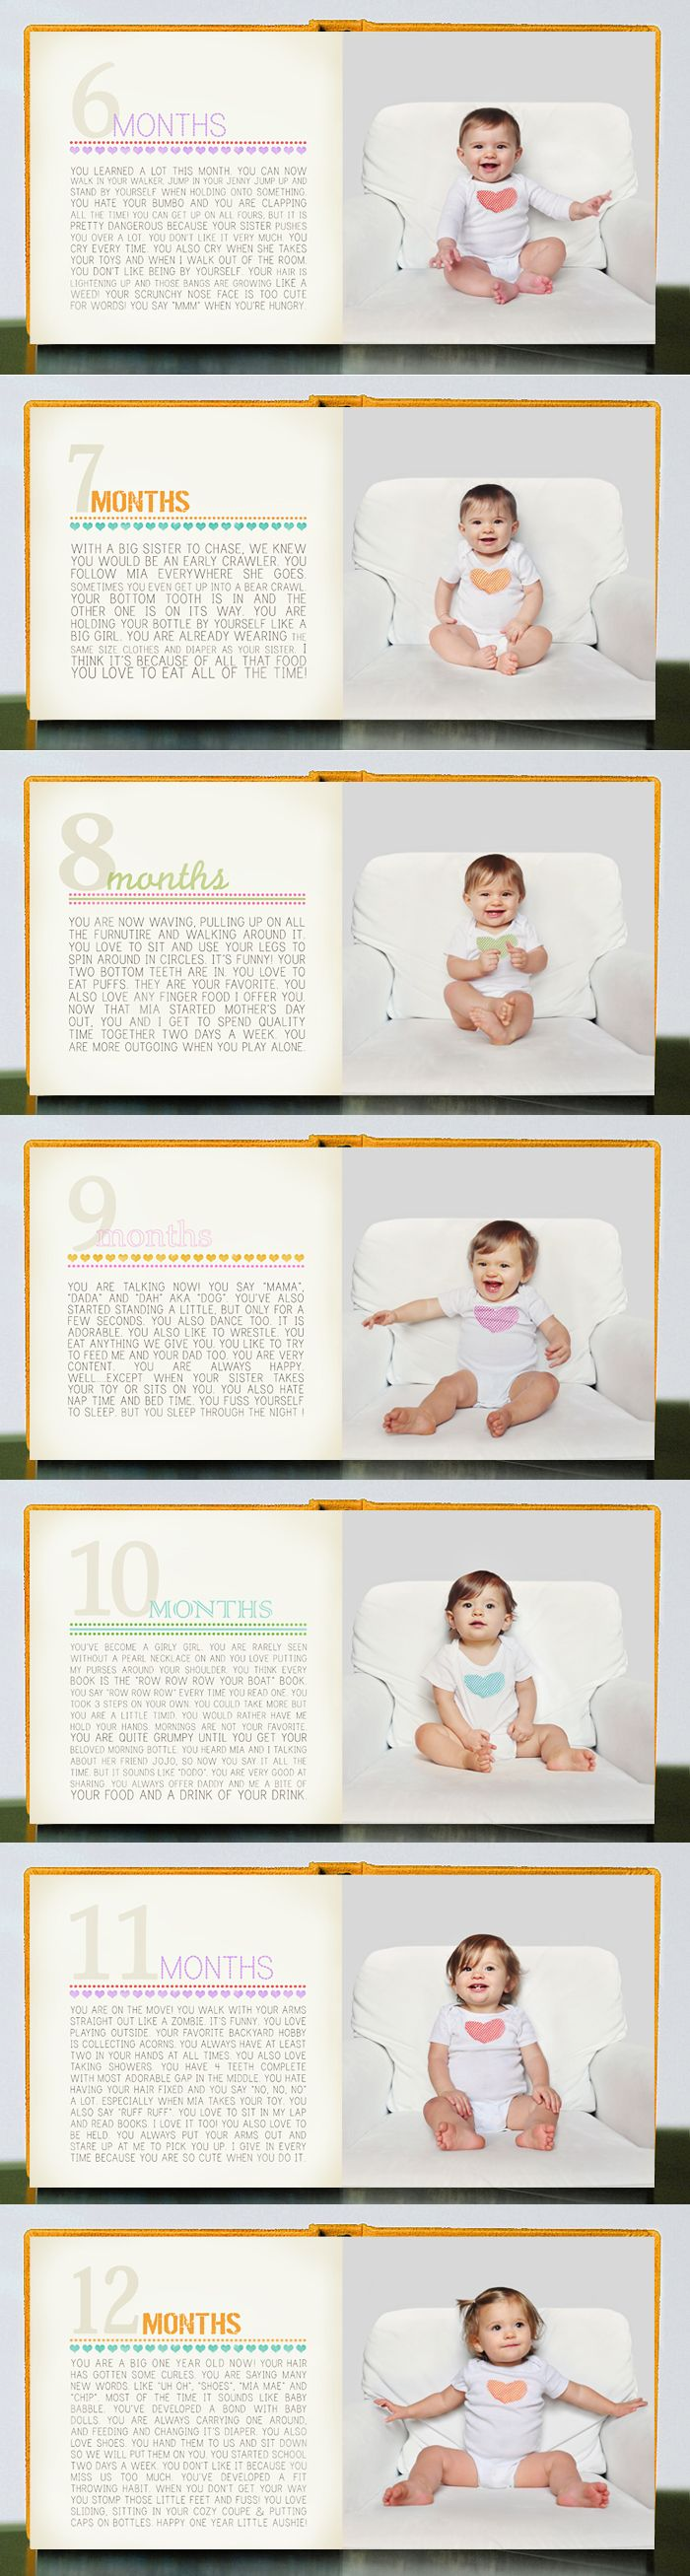 monthly baby photo template